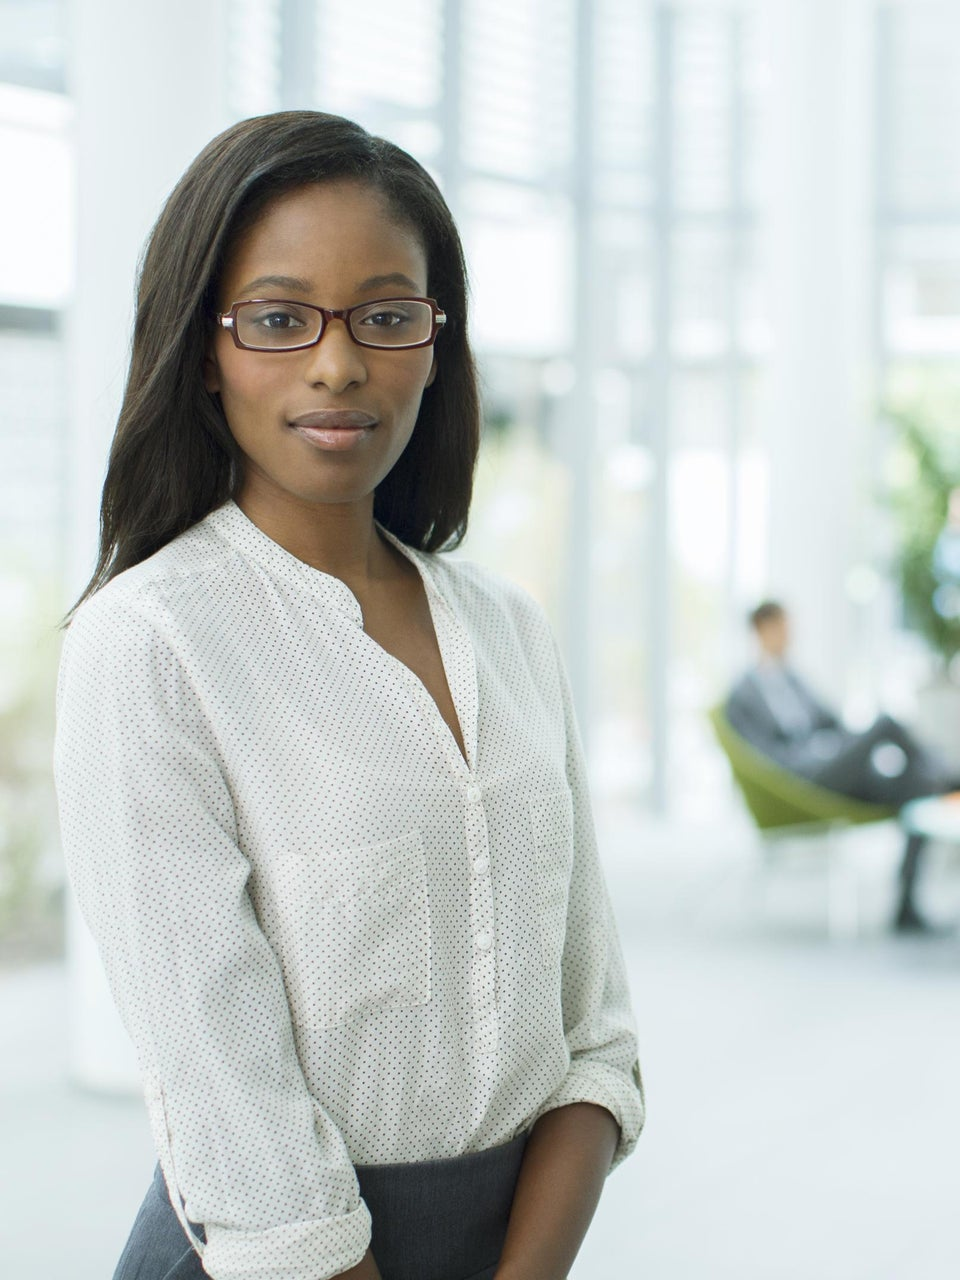 Confronting Racial Bias At Work: What It Looks Like And How To Handle It